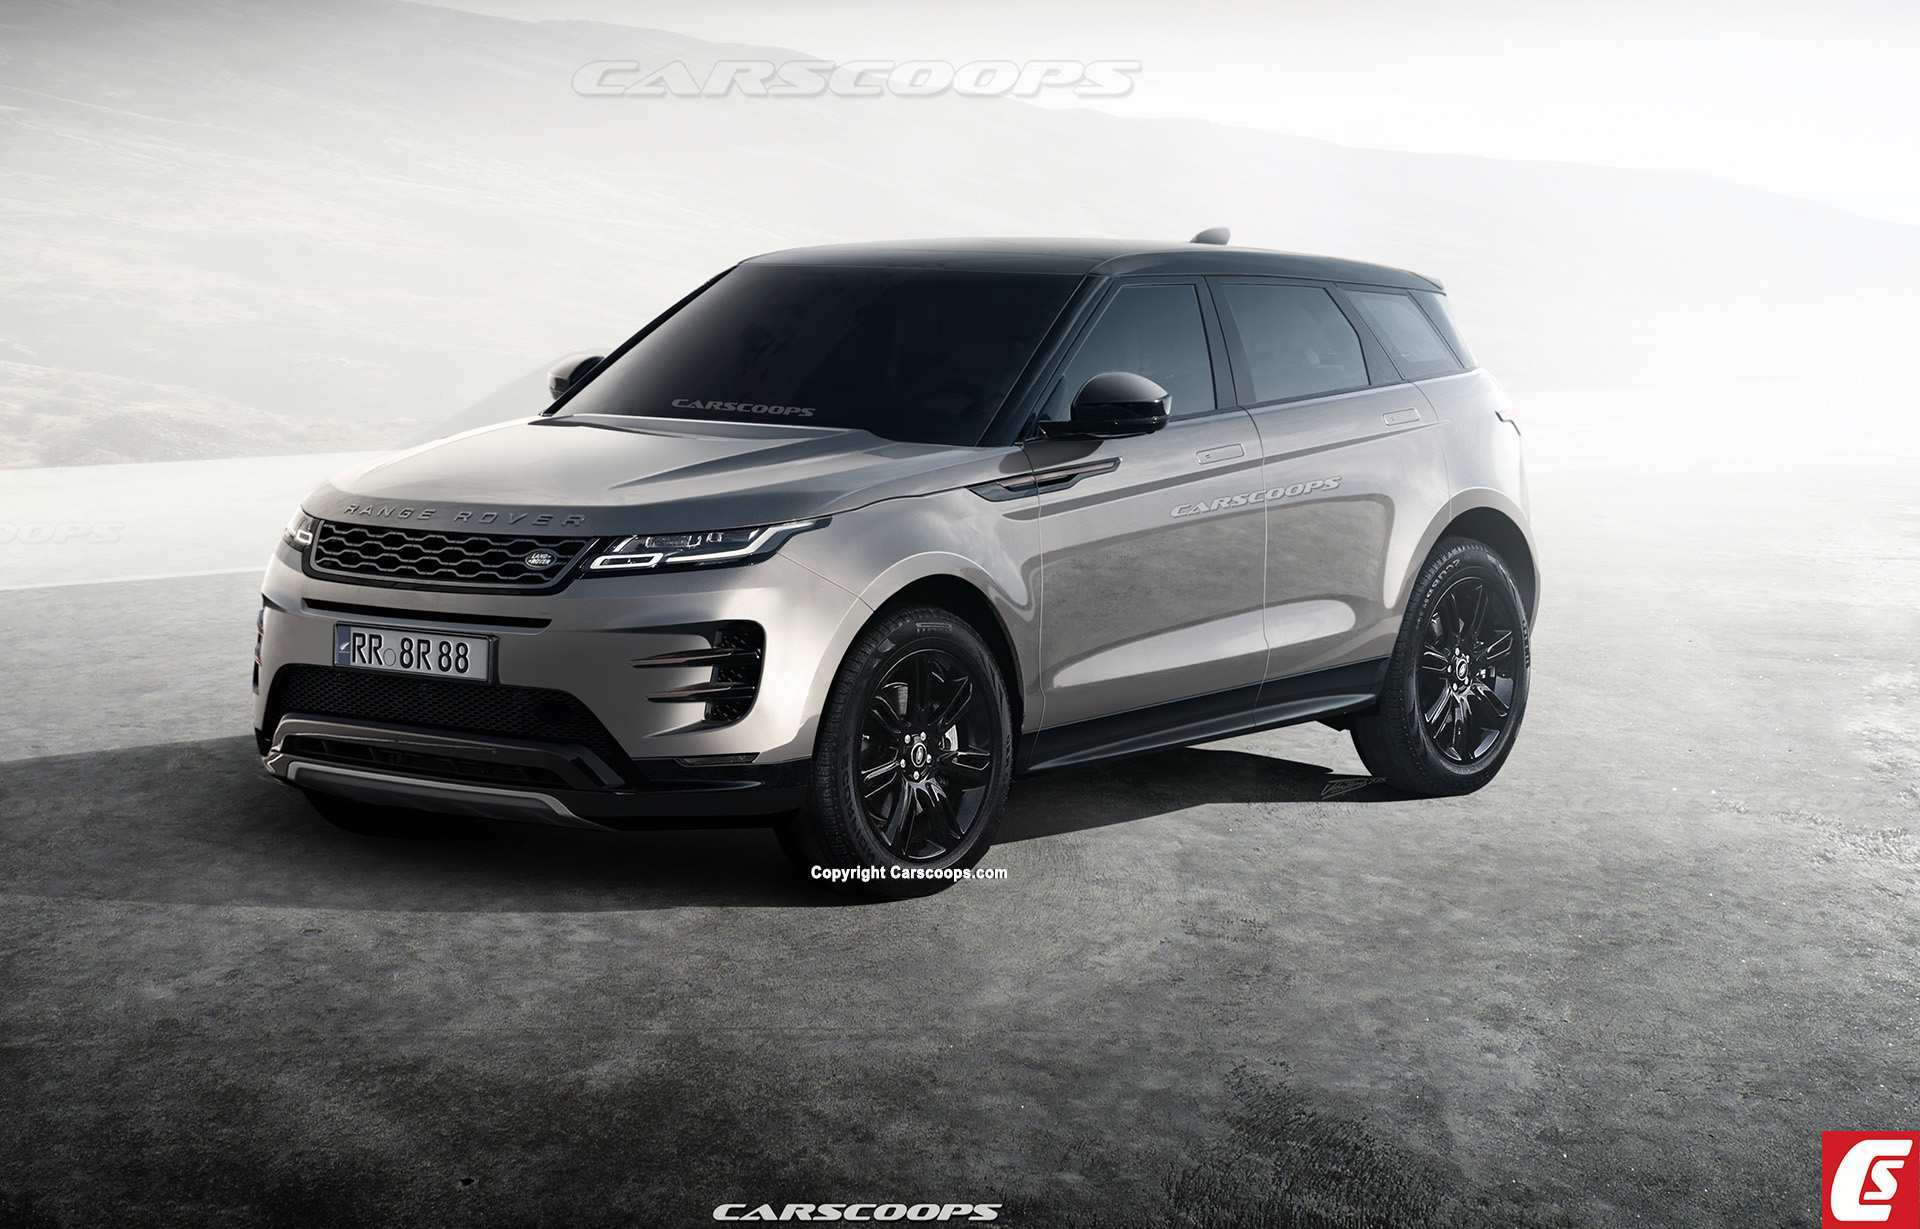 42 All New 2020 Range Rover Evoque Reviews by 2020 Range Rover Evoque